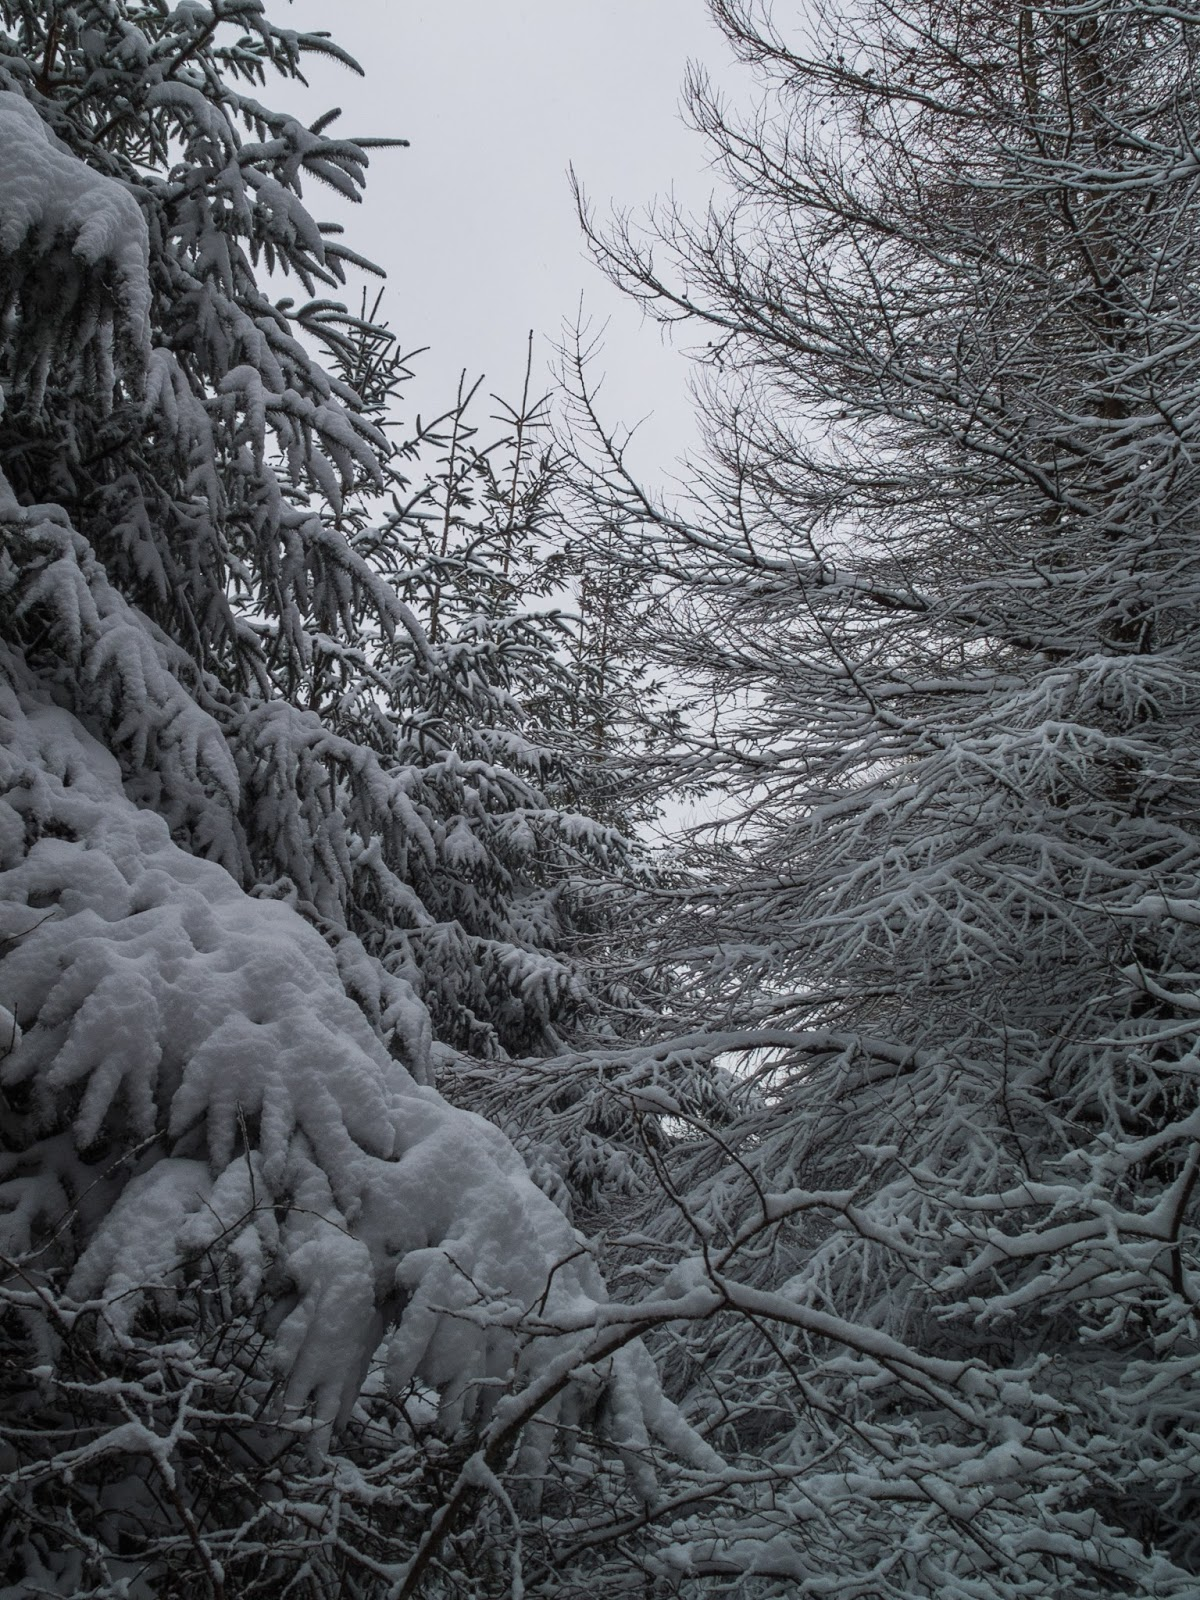 Snow covered pine trees inside a forest in North Cork.